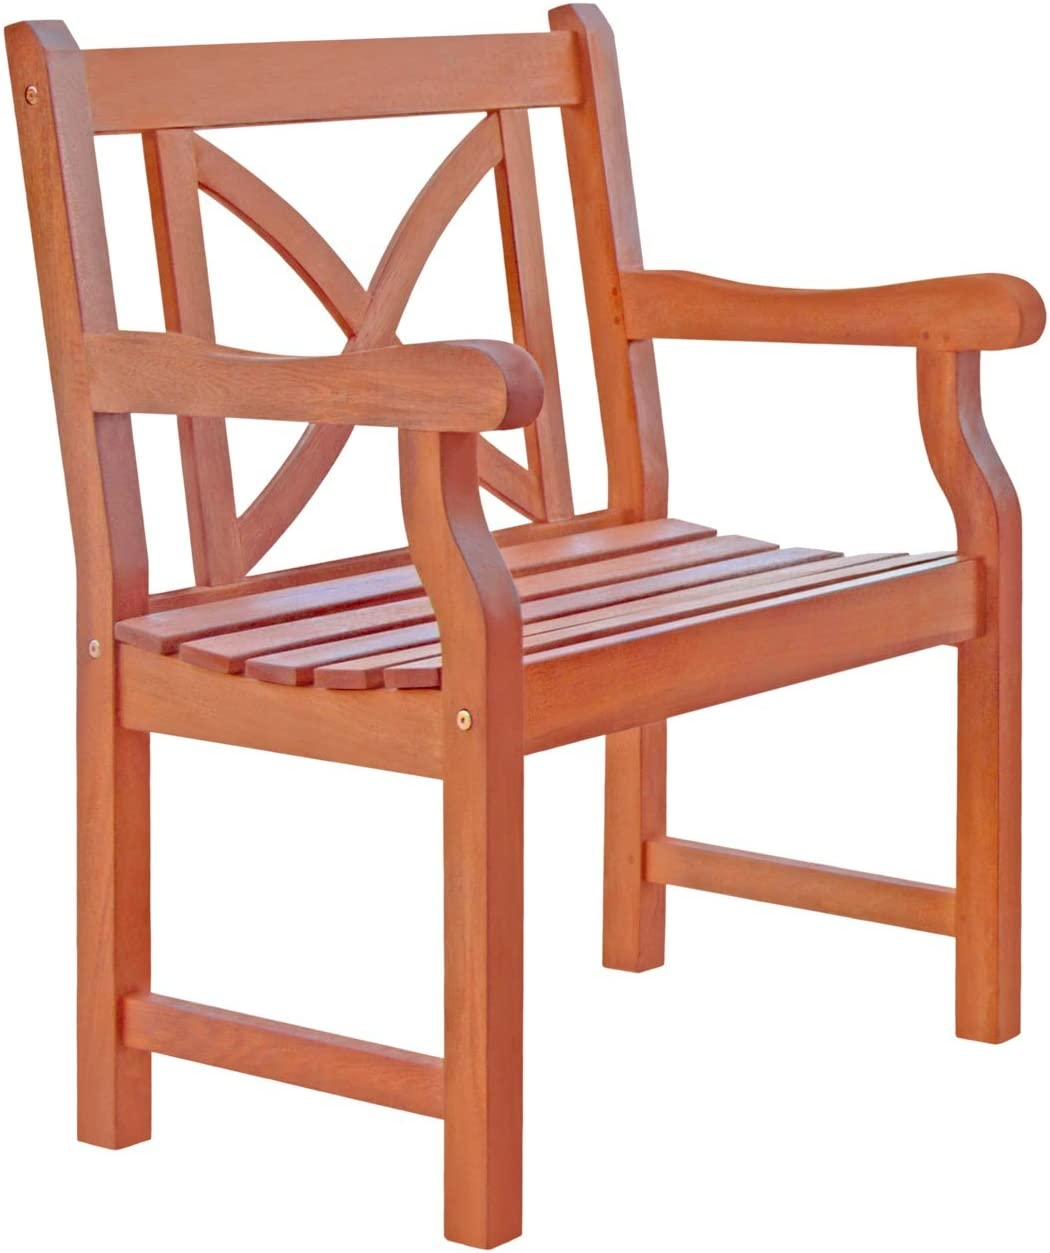 VIFAH V99 Outdoor Wood Arm Chair X-Back Design, Natural Wood Finish, 23 by 24 by 35-Inch